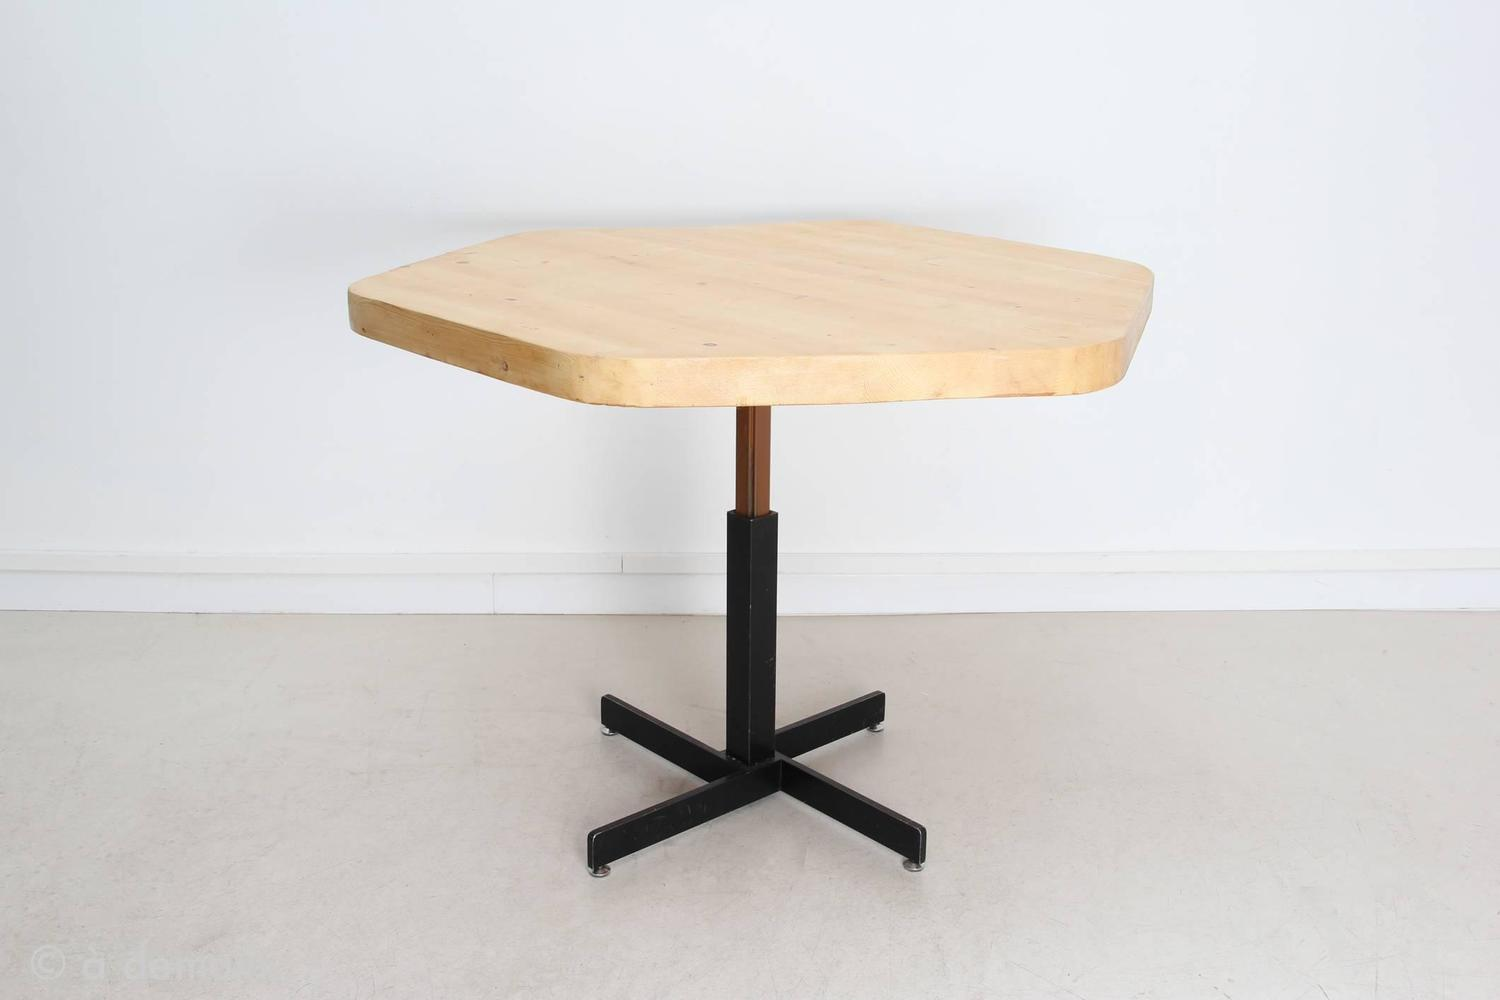 charlotte perriand hexagonal dining table from the 1960s at 1stdibs. Black Bedroom Furniture Sets. Home Design Ideas